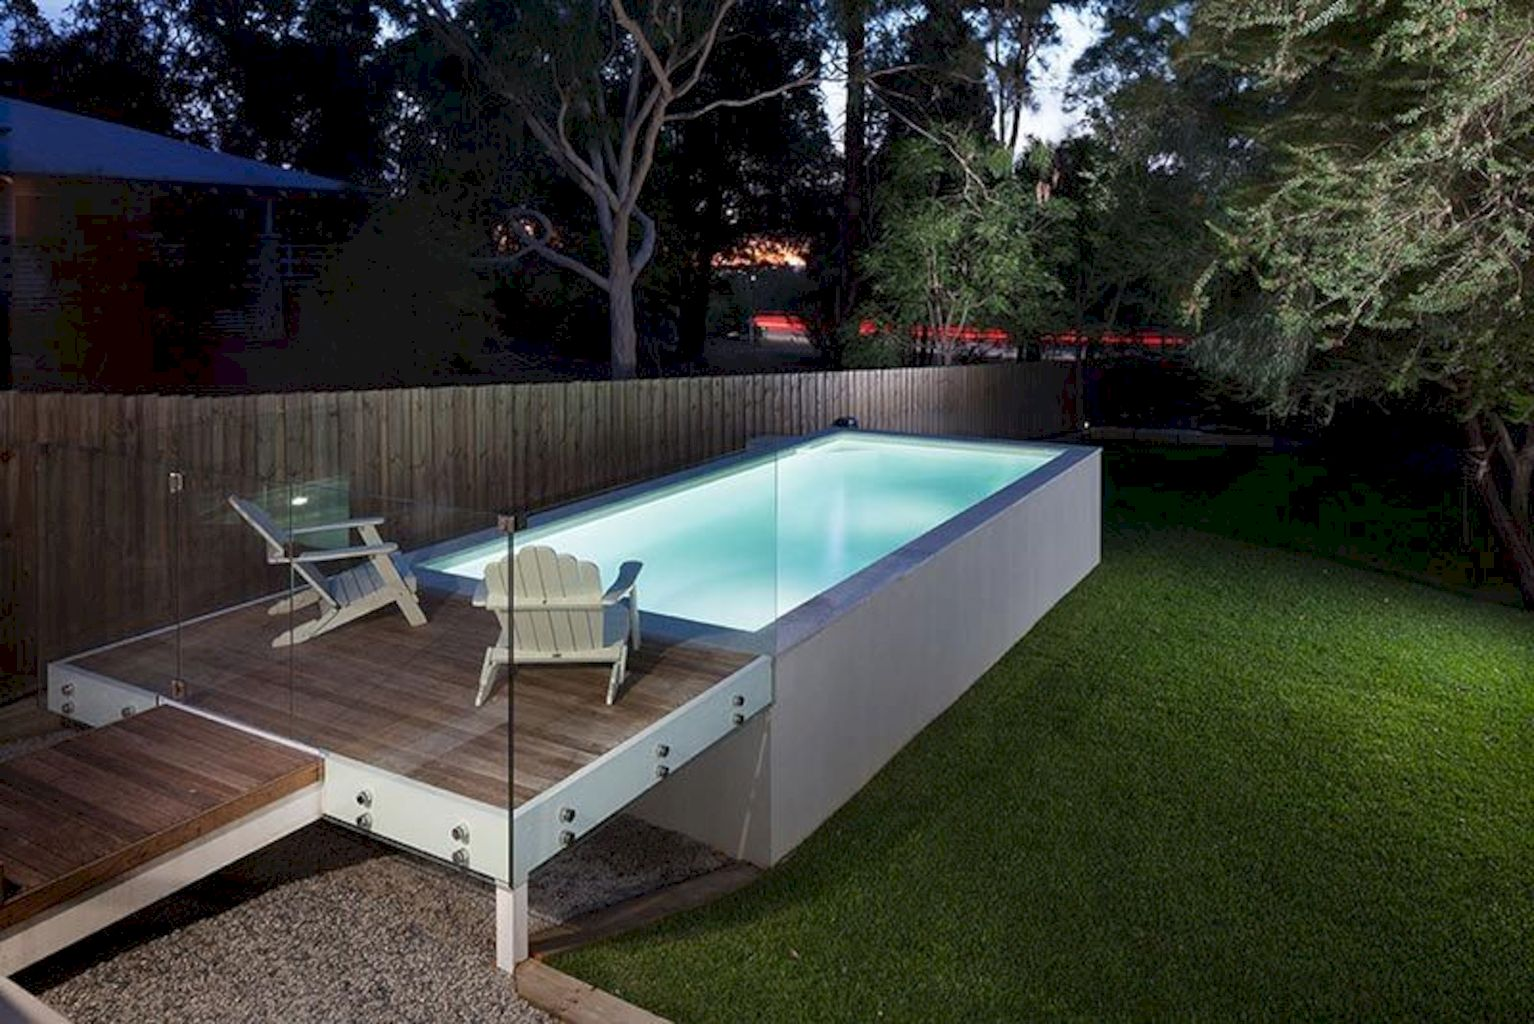 Affordable rectangular pool designs built in small areas that give a lavish look getting along with beautiful landscape (8)